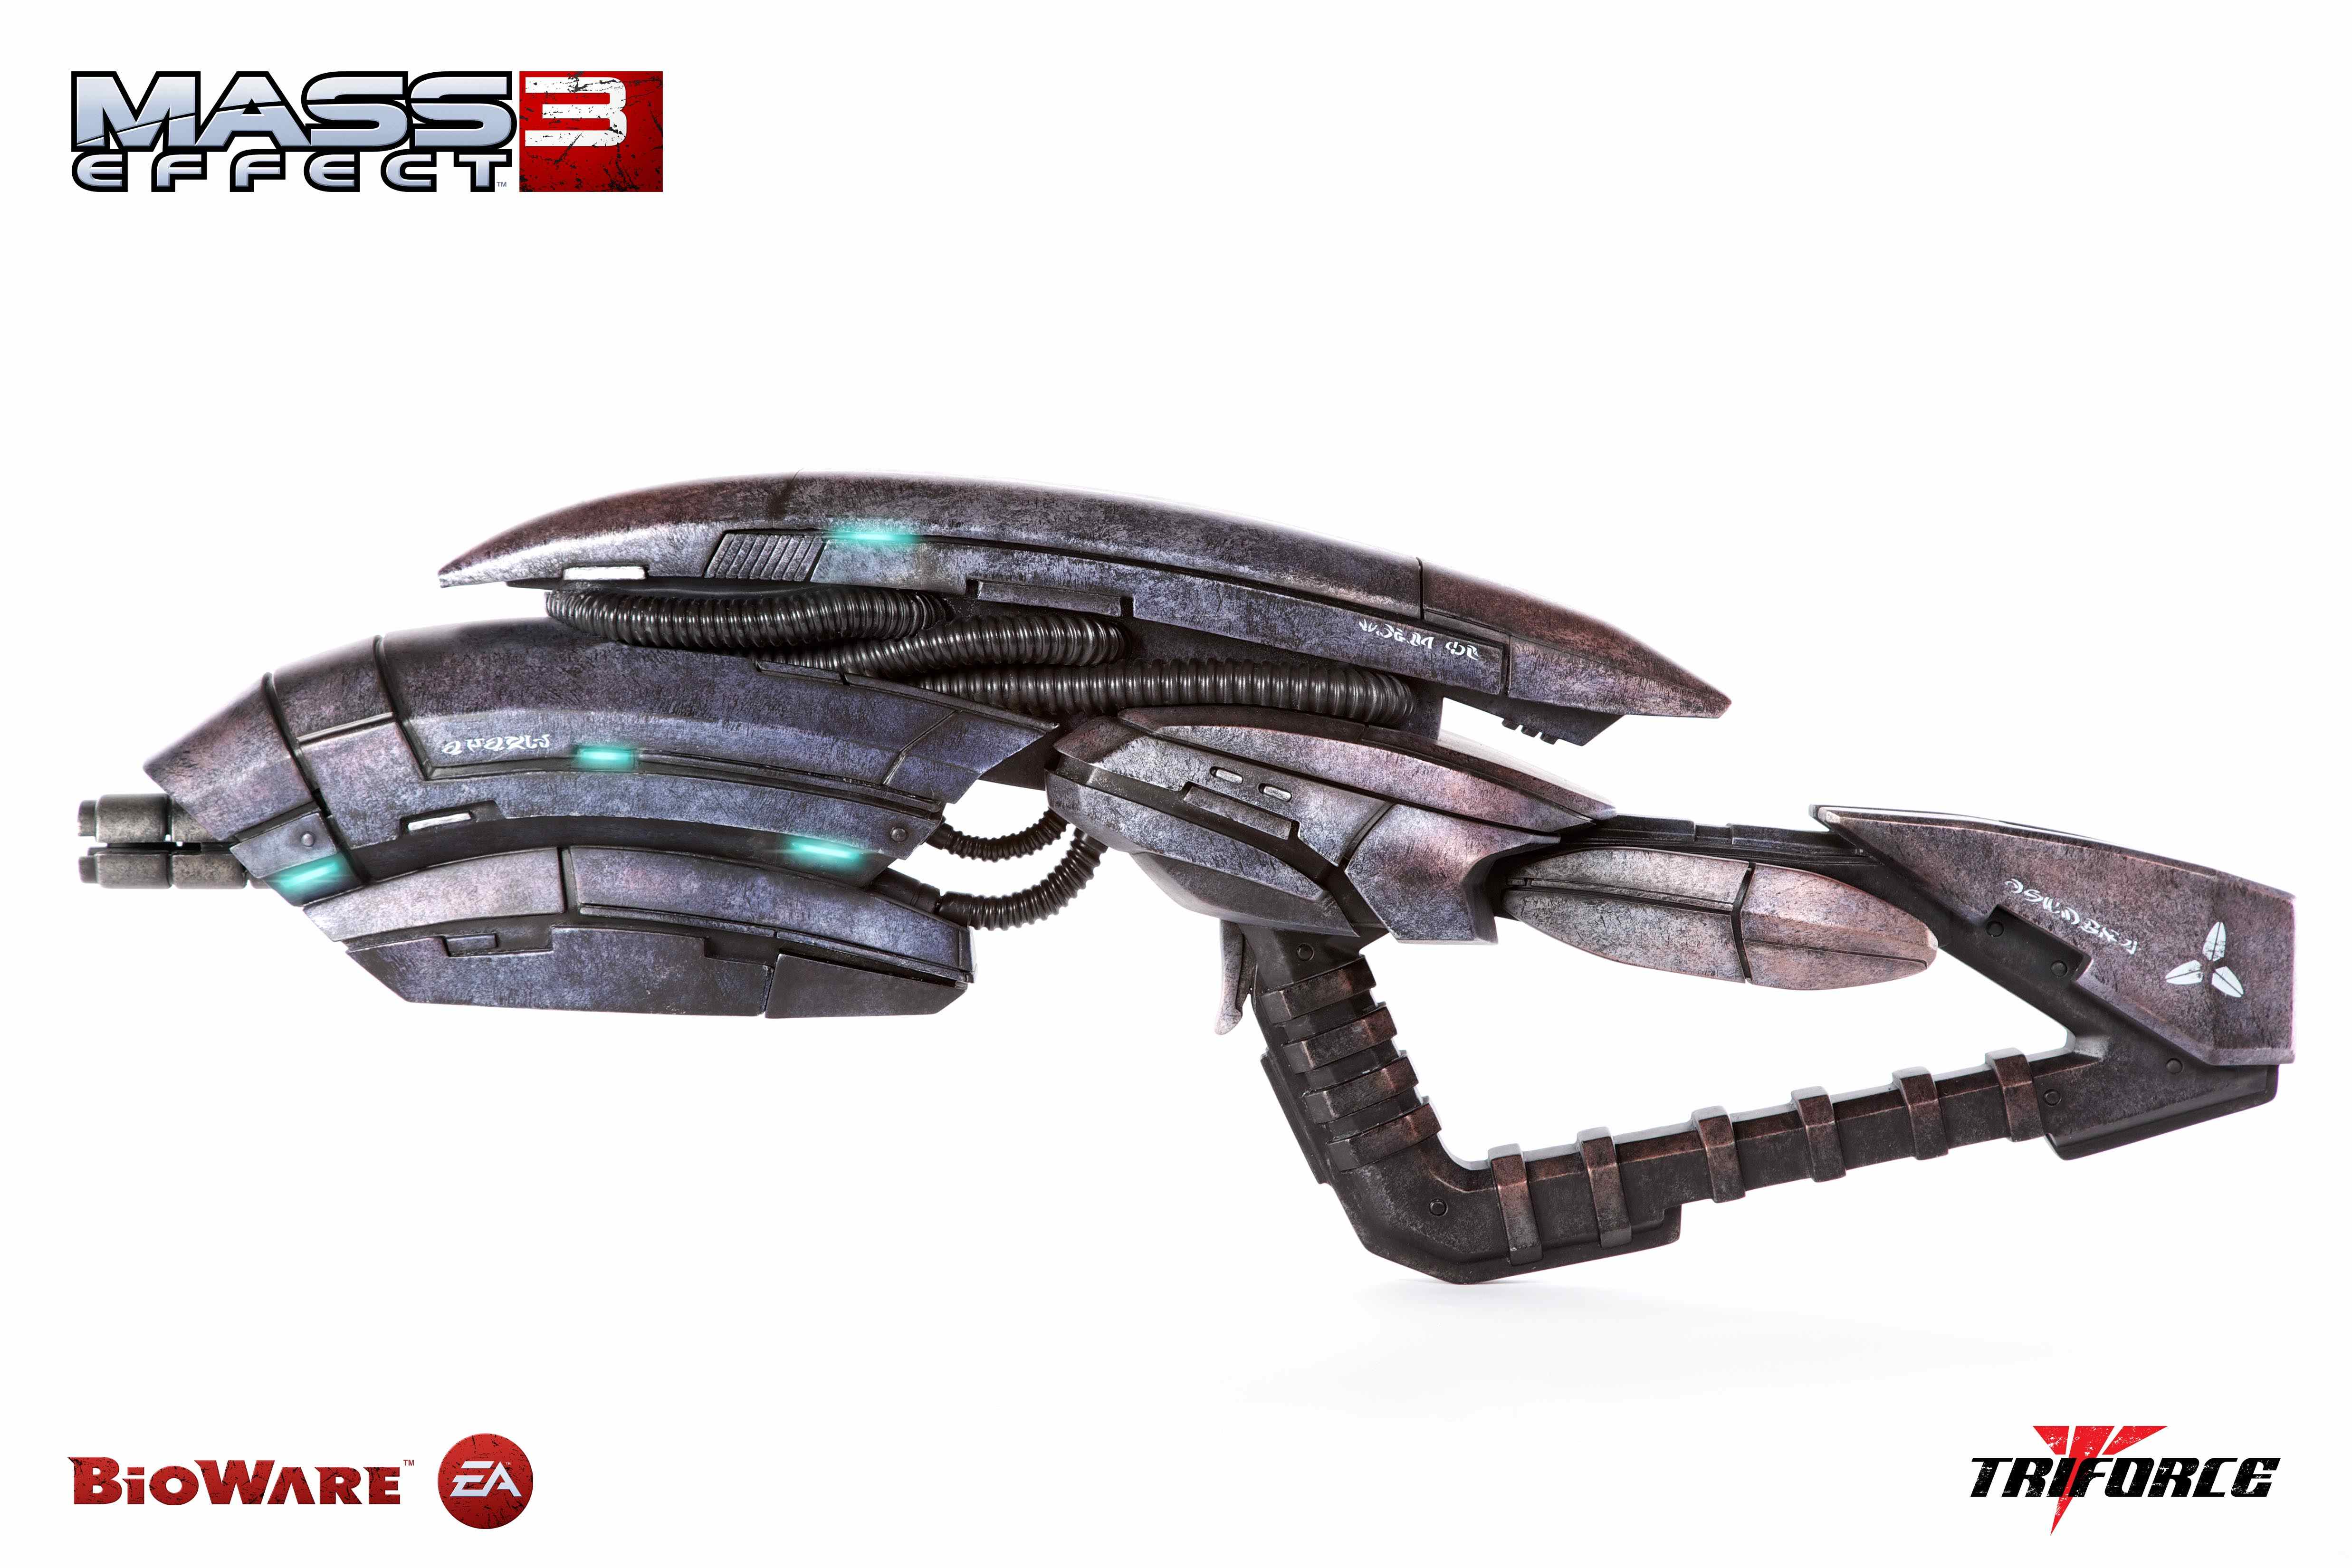 Mass Effect 3 - Geth Pulse Rifle